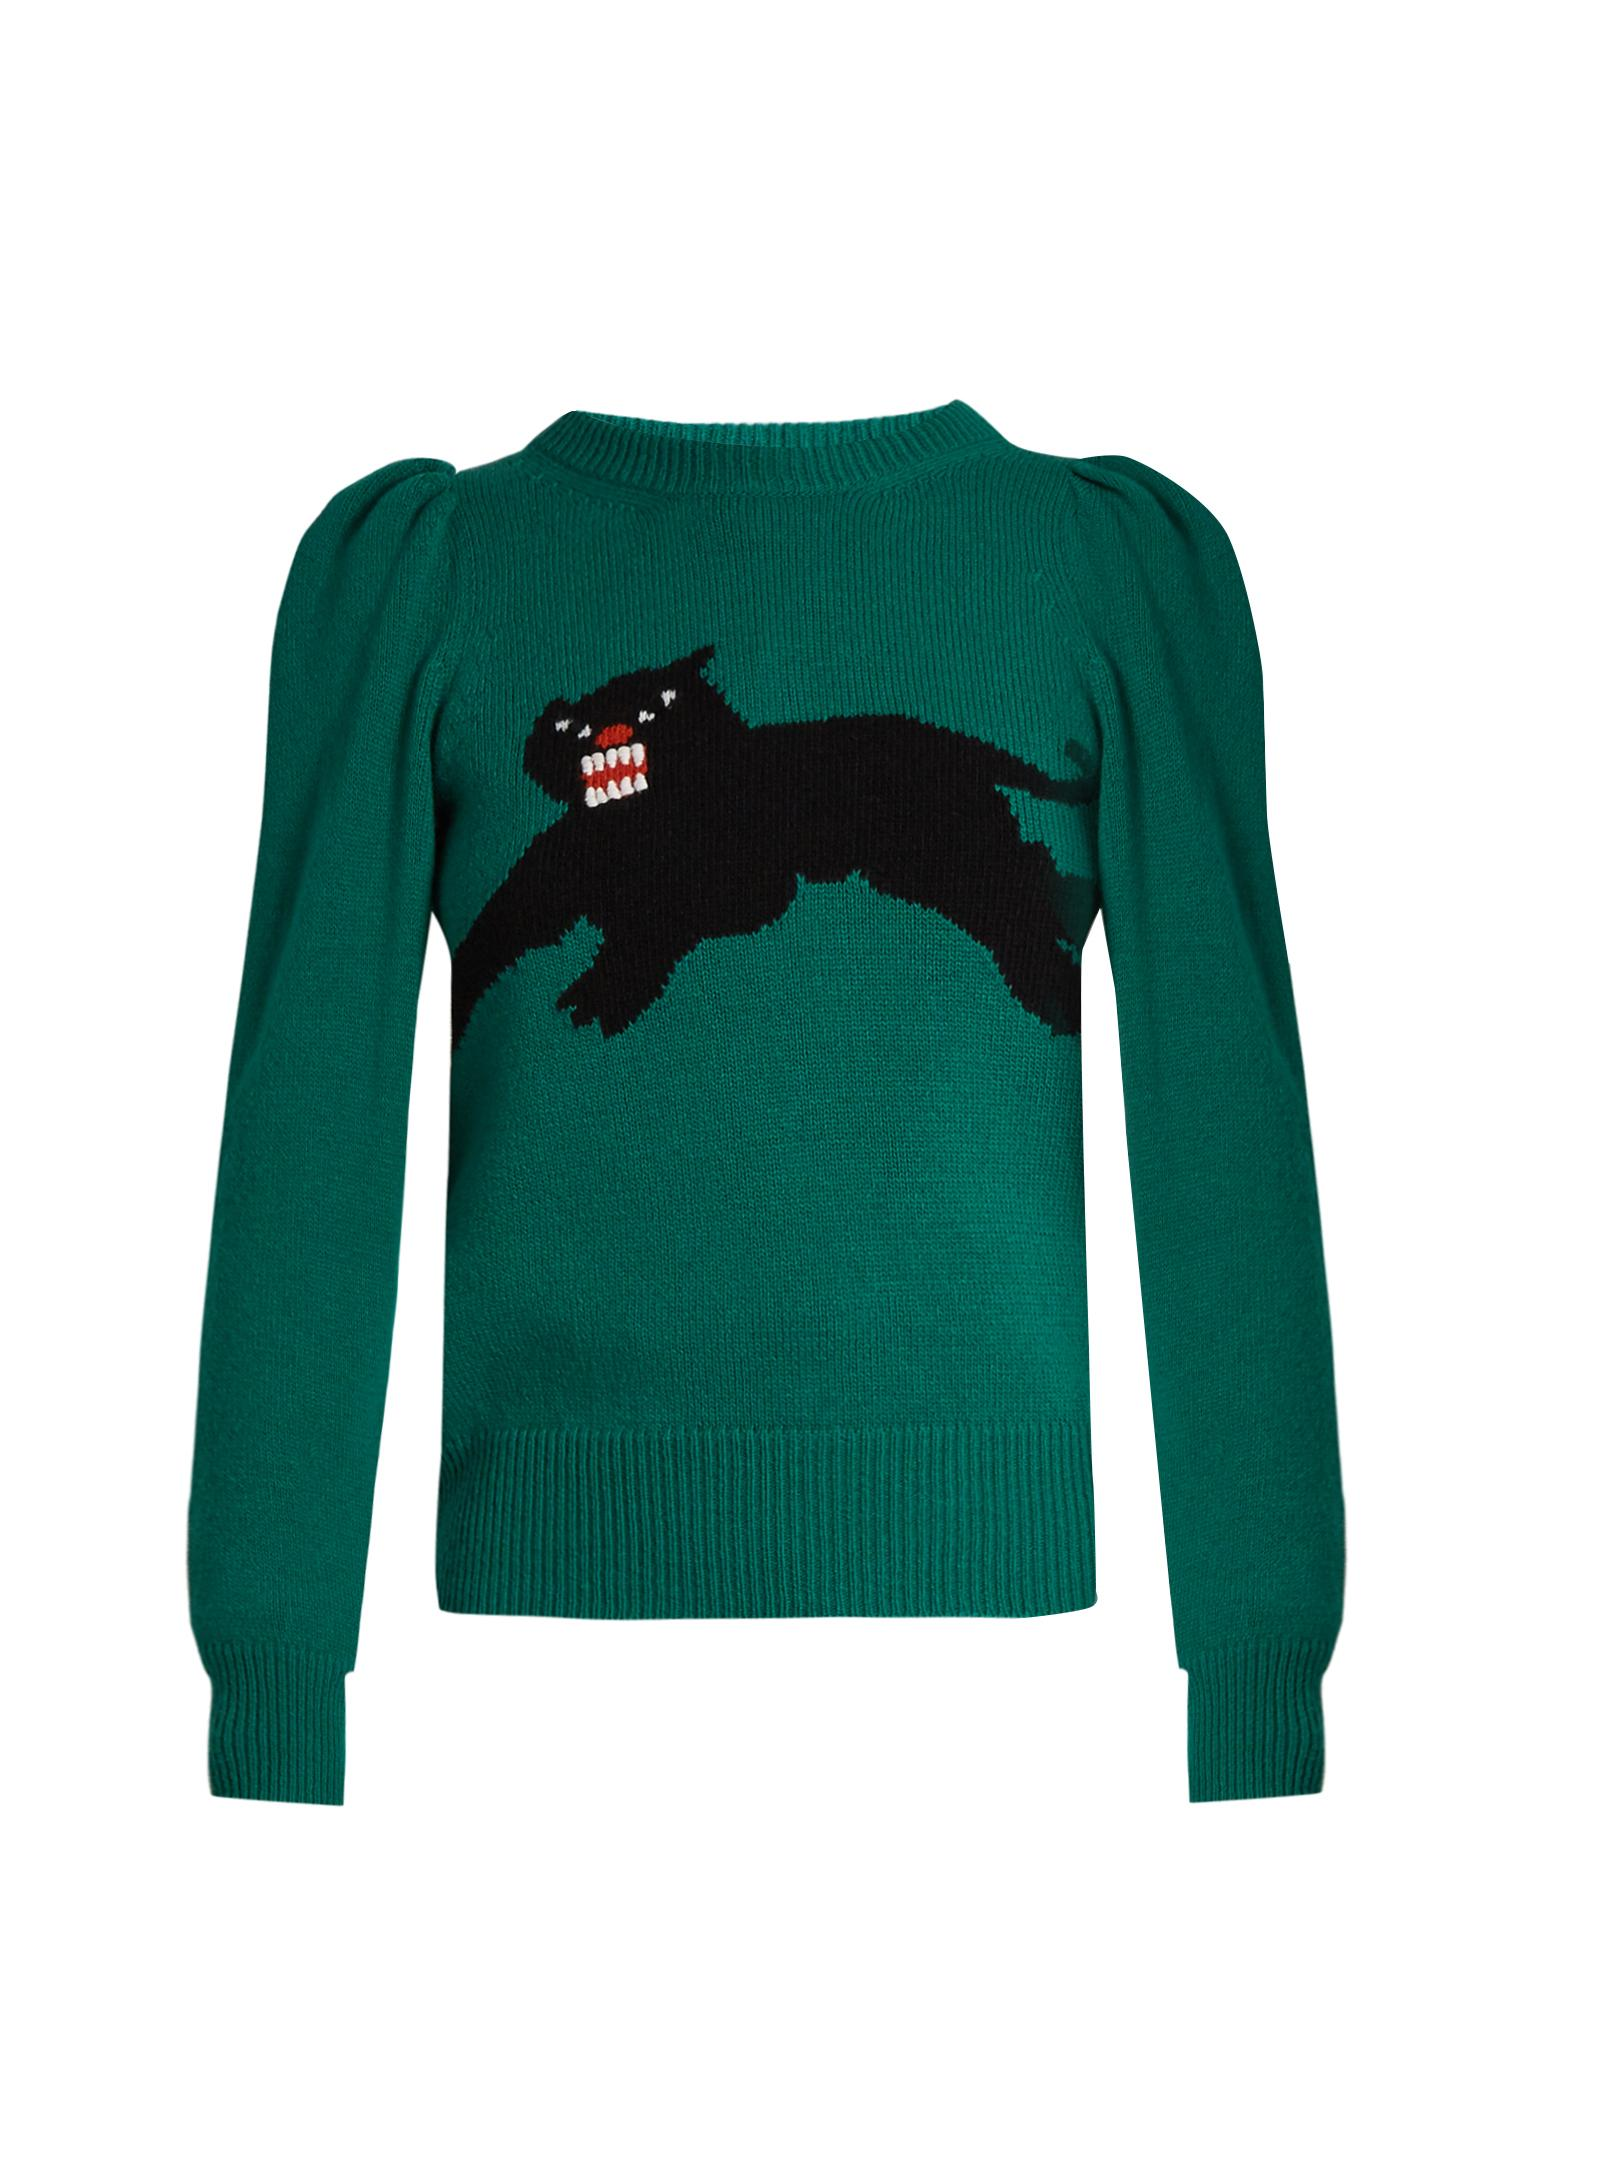 ae77e40e0 Gucci Green Panther-intarsia Wool Jumper - Size Xs in Green - Lyst